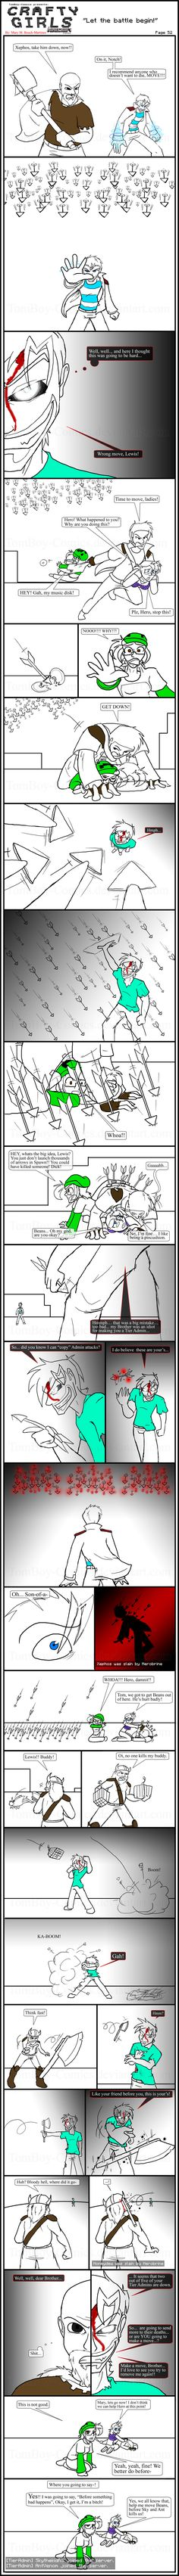 Minecraft Comic: CraftyGirls Pg 52 by TomBoy-Comics on deviantART